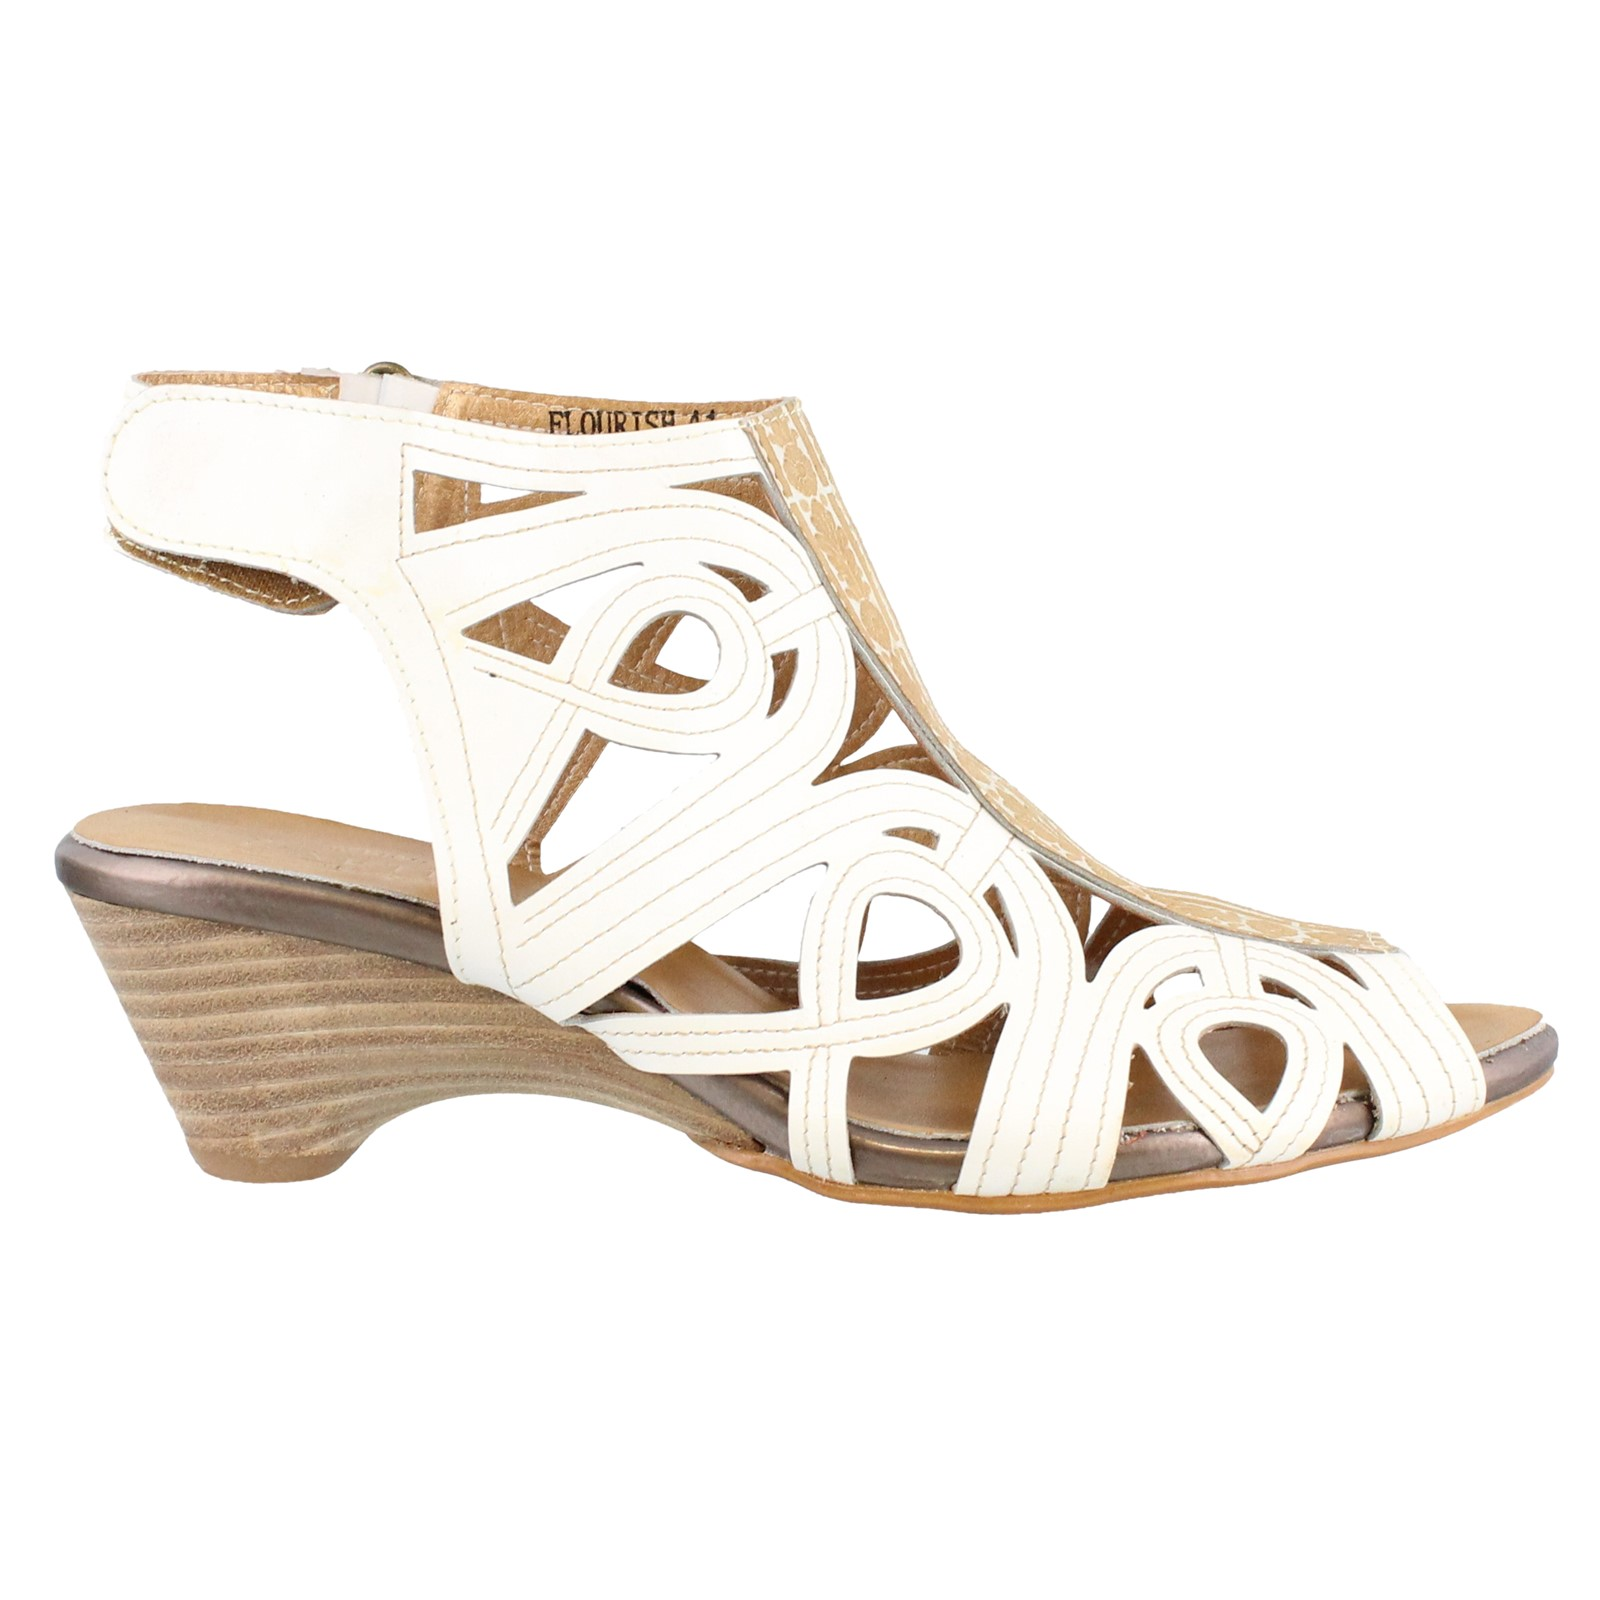 Women's L'artiste by Spring Step, Flourish Mid Heel Sandals